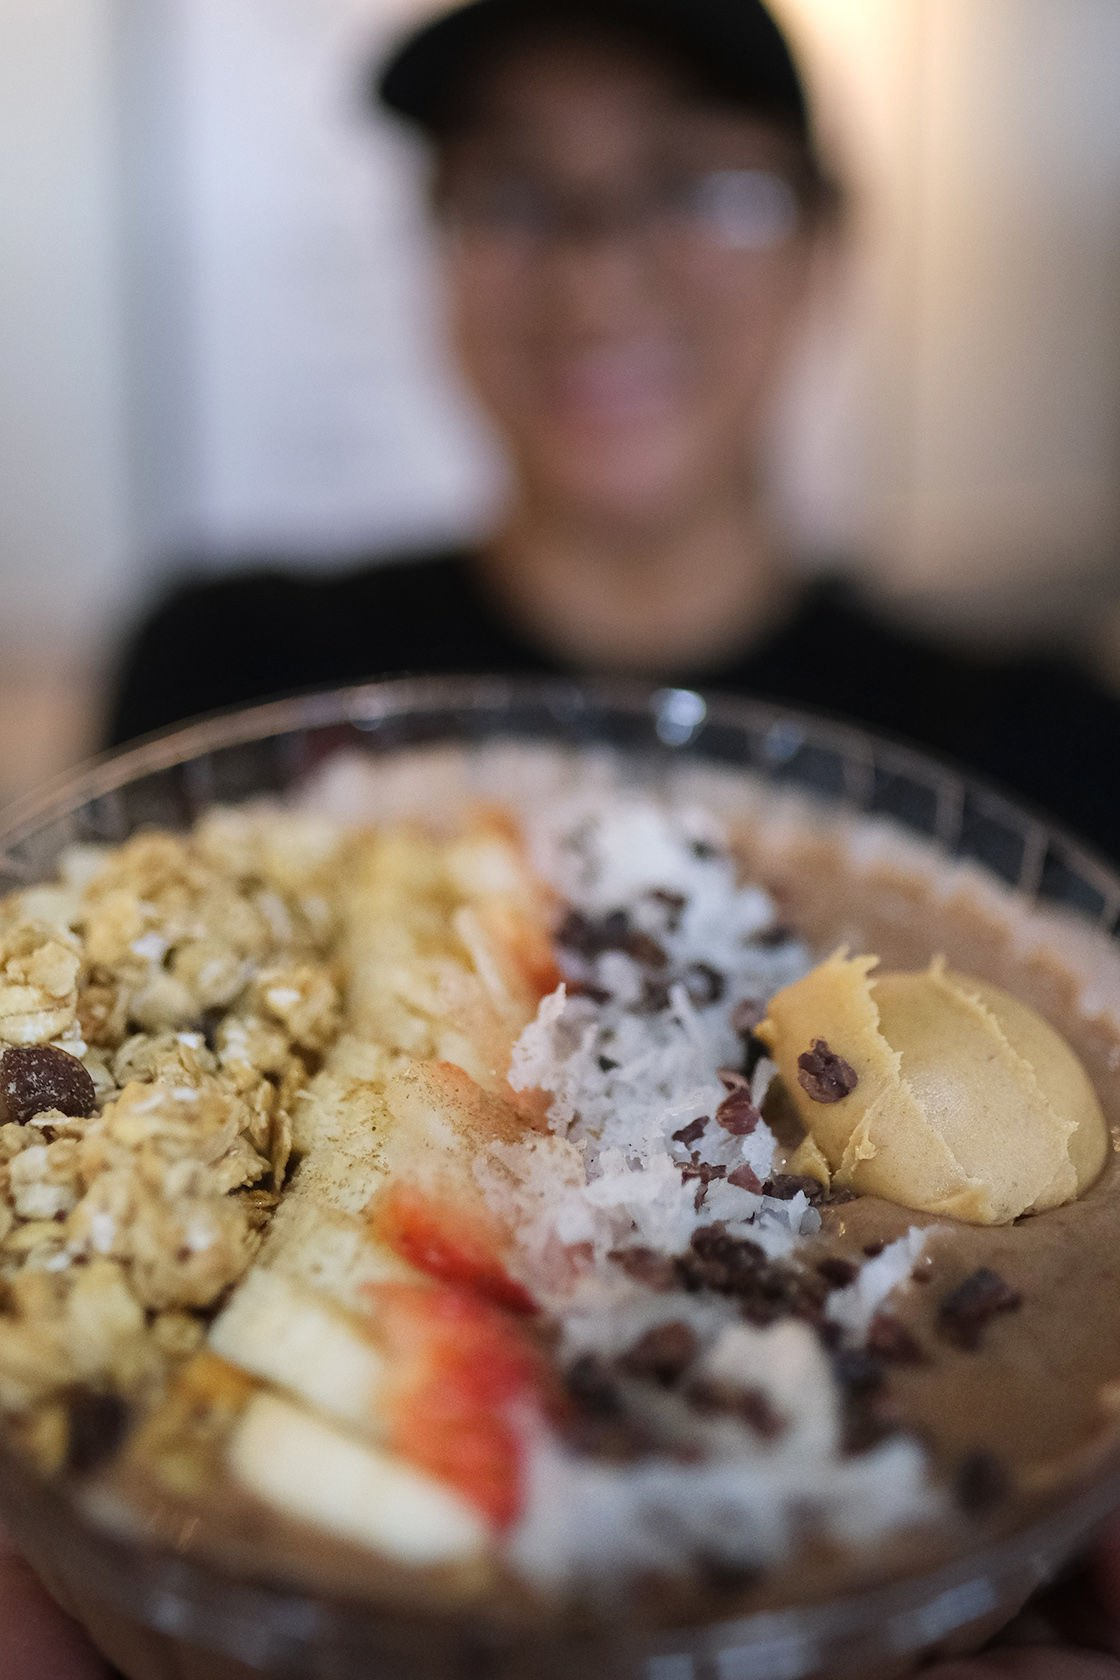 Squeeze the most out of life at Ignite Juice Bar